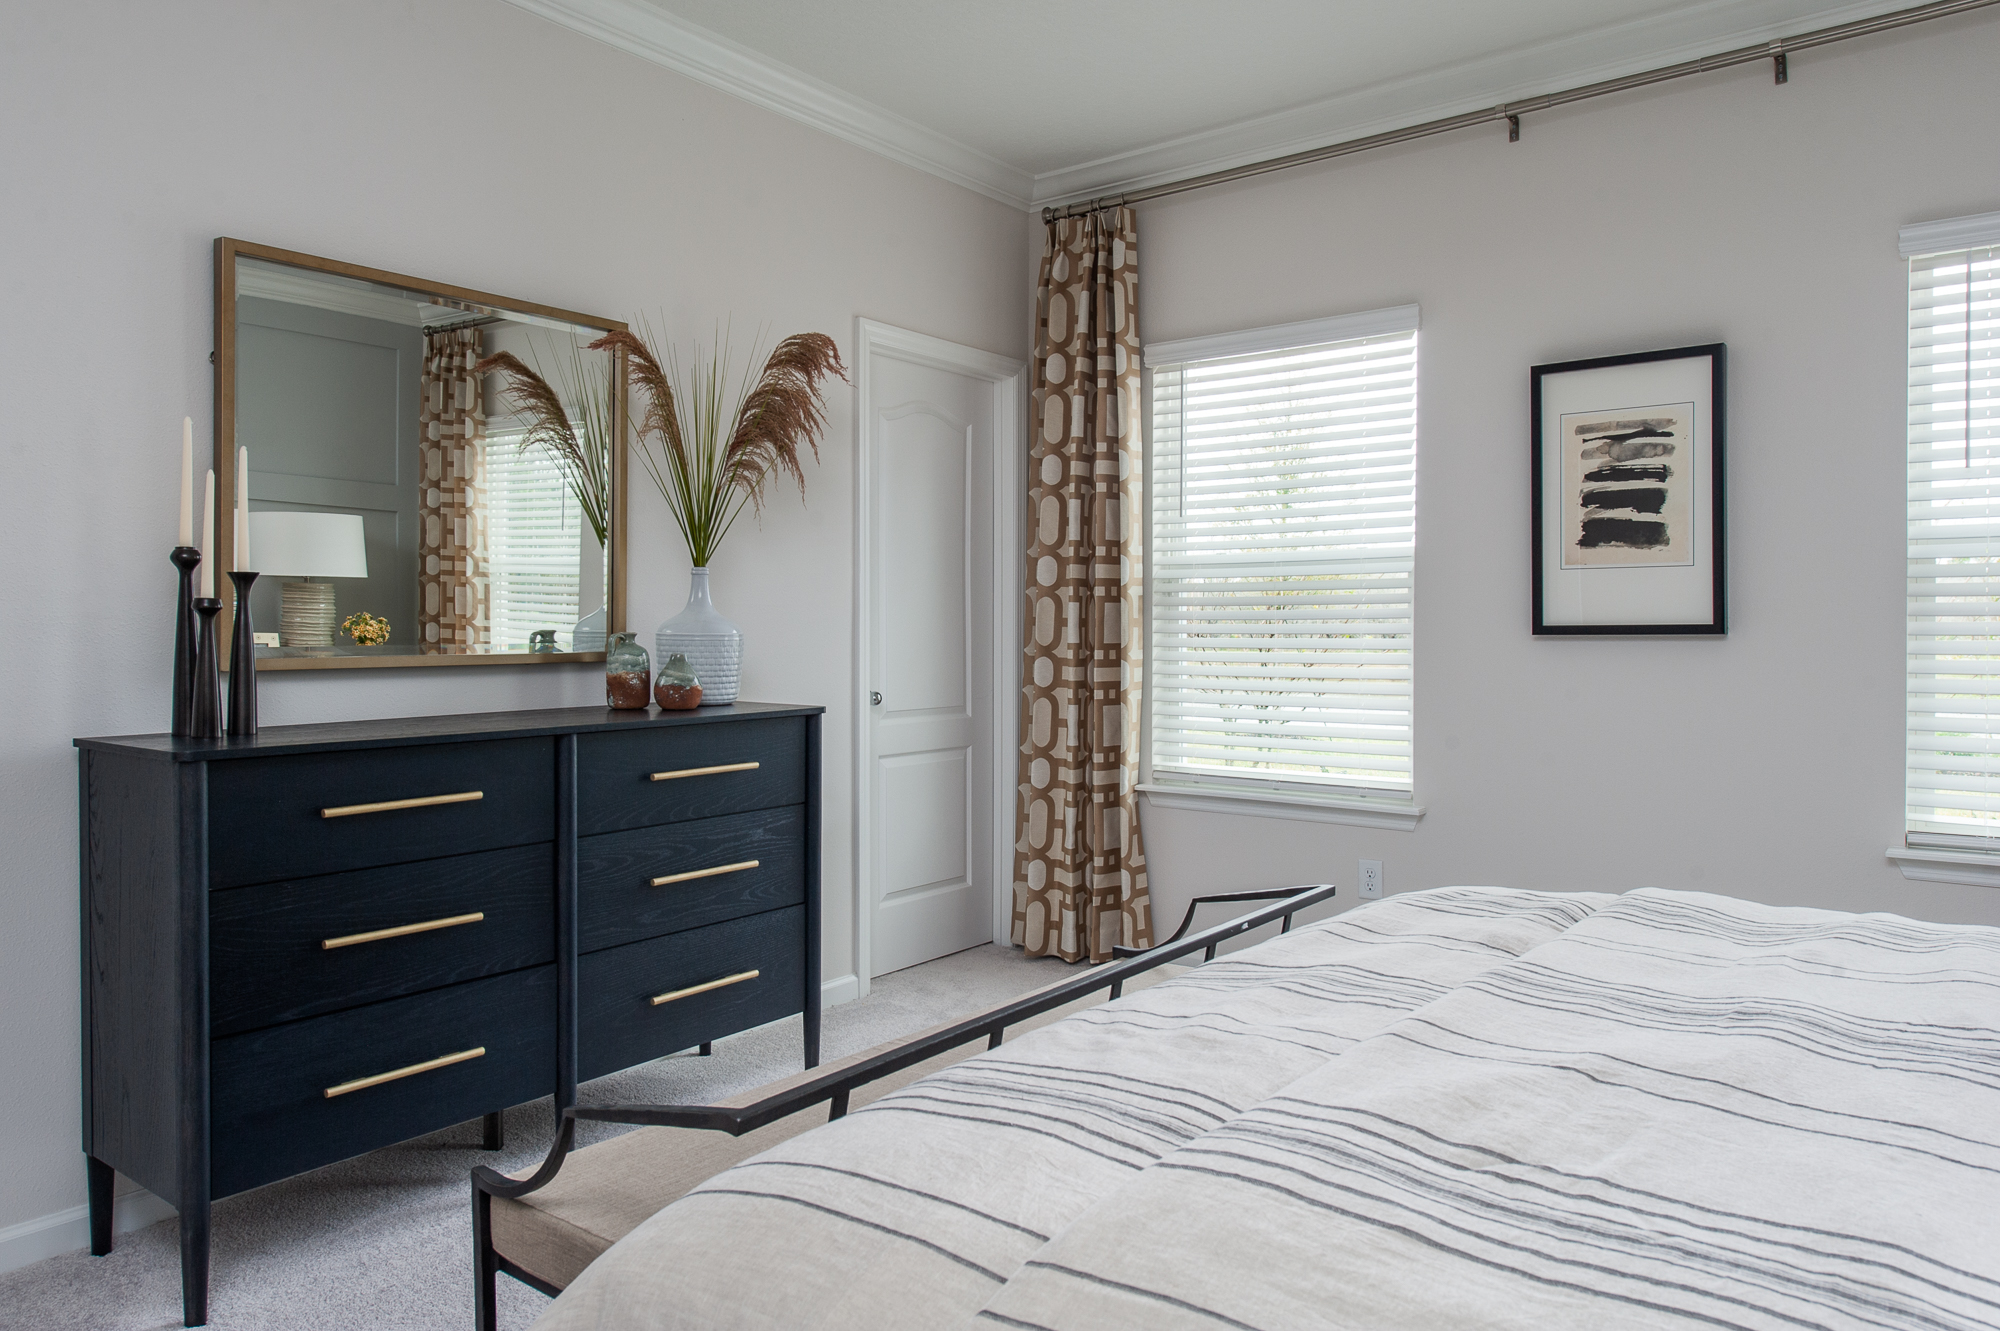 Micamy Design Studio_Model Home_Interior Design_Orchard Cove_Modern Coastal_Universal_Four Hands_McGee & Co_Uttermost_Wendover_Coastal_Arteriors_Owners Suite.jpg